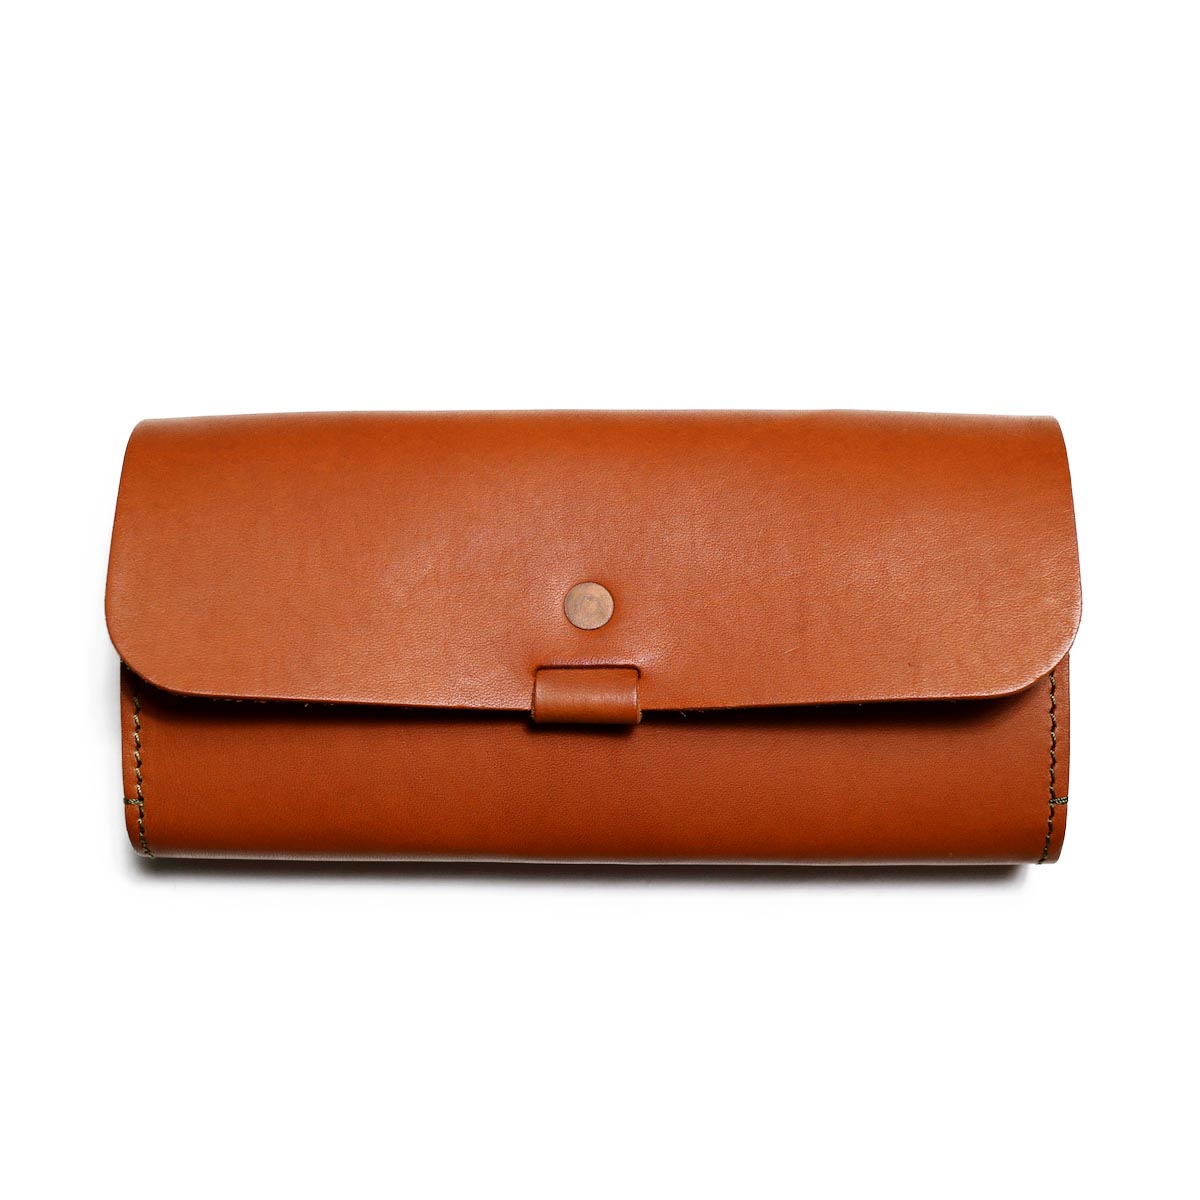 SLOW / TOSCANA LONG WALLET -ORANGE